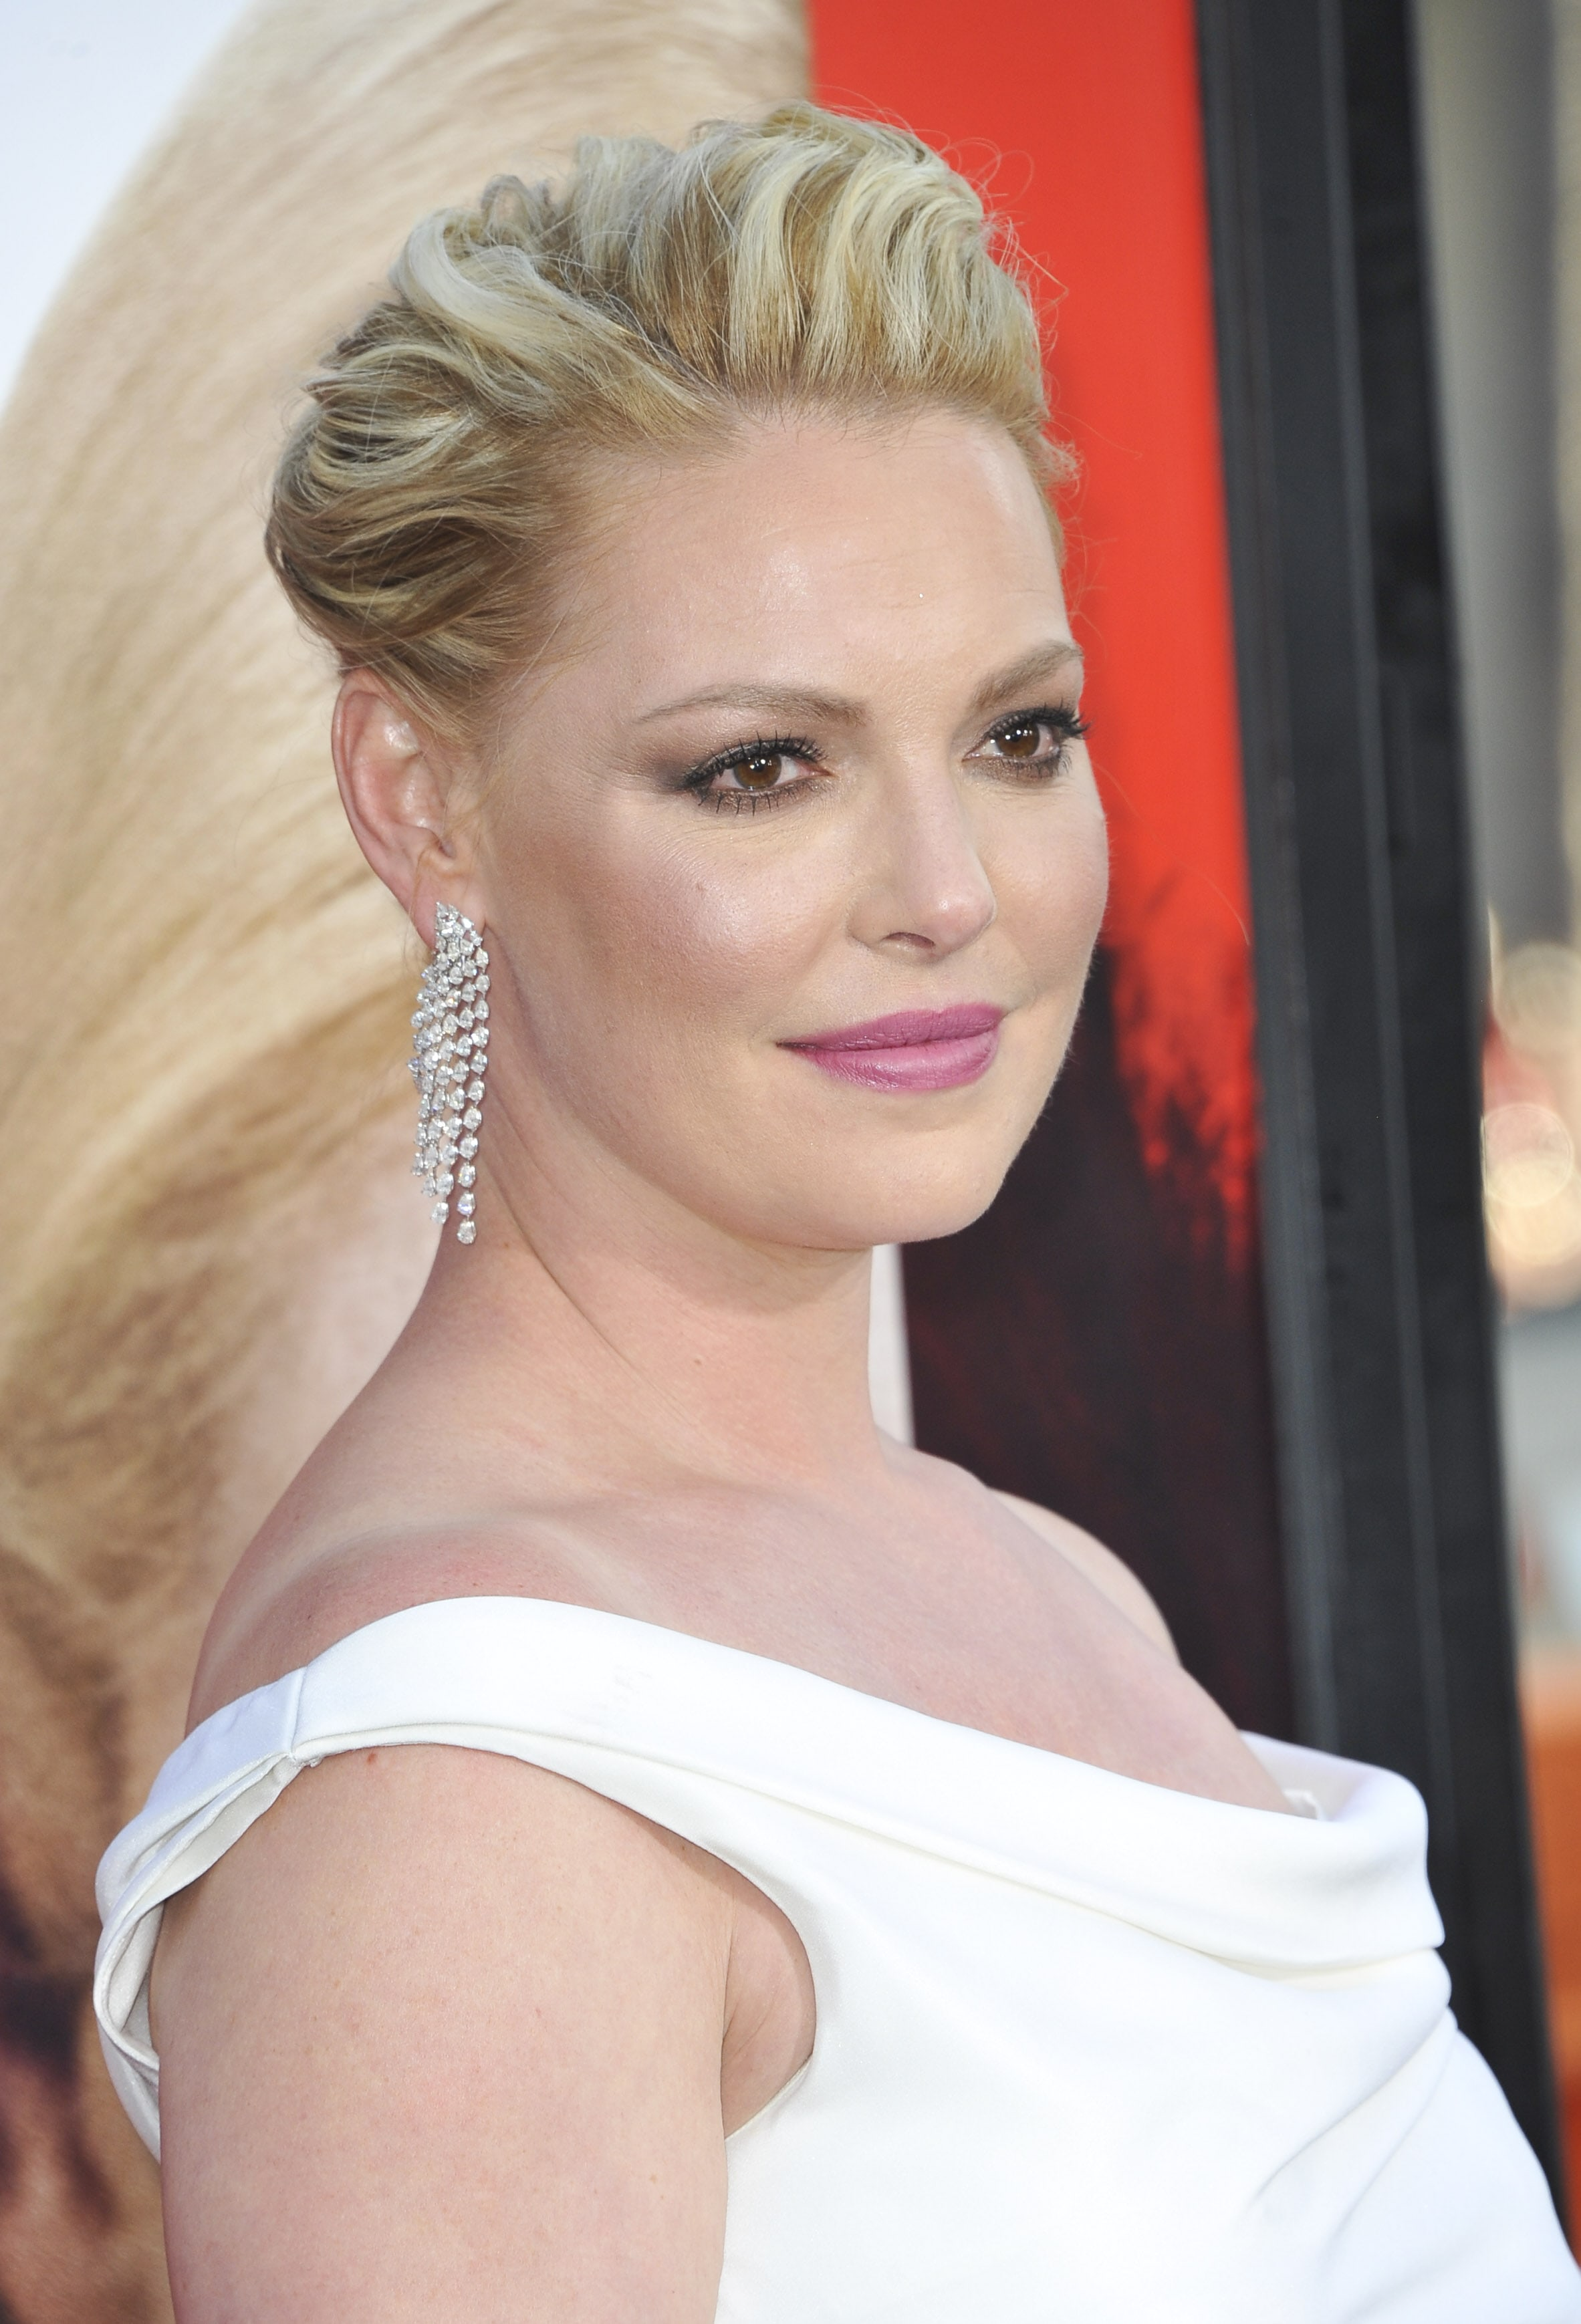 Katherine Heigl Is Rep... Katherine Heigl